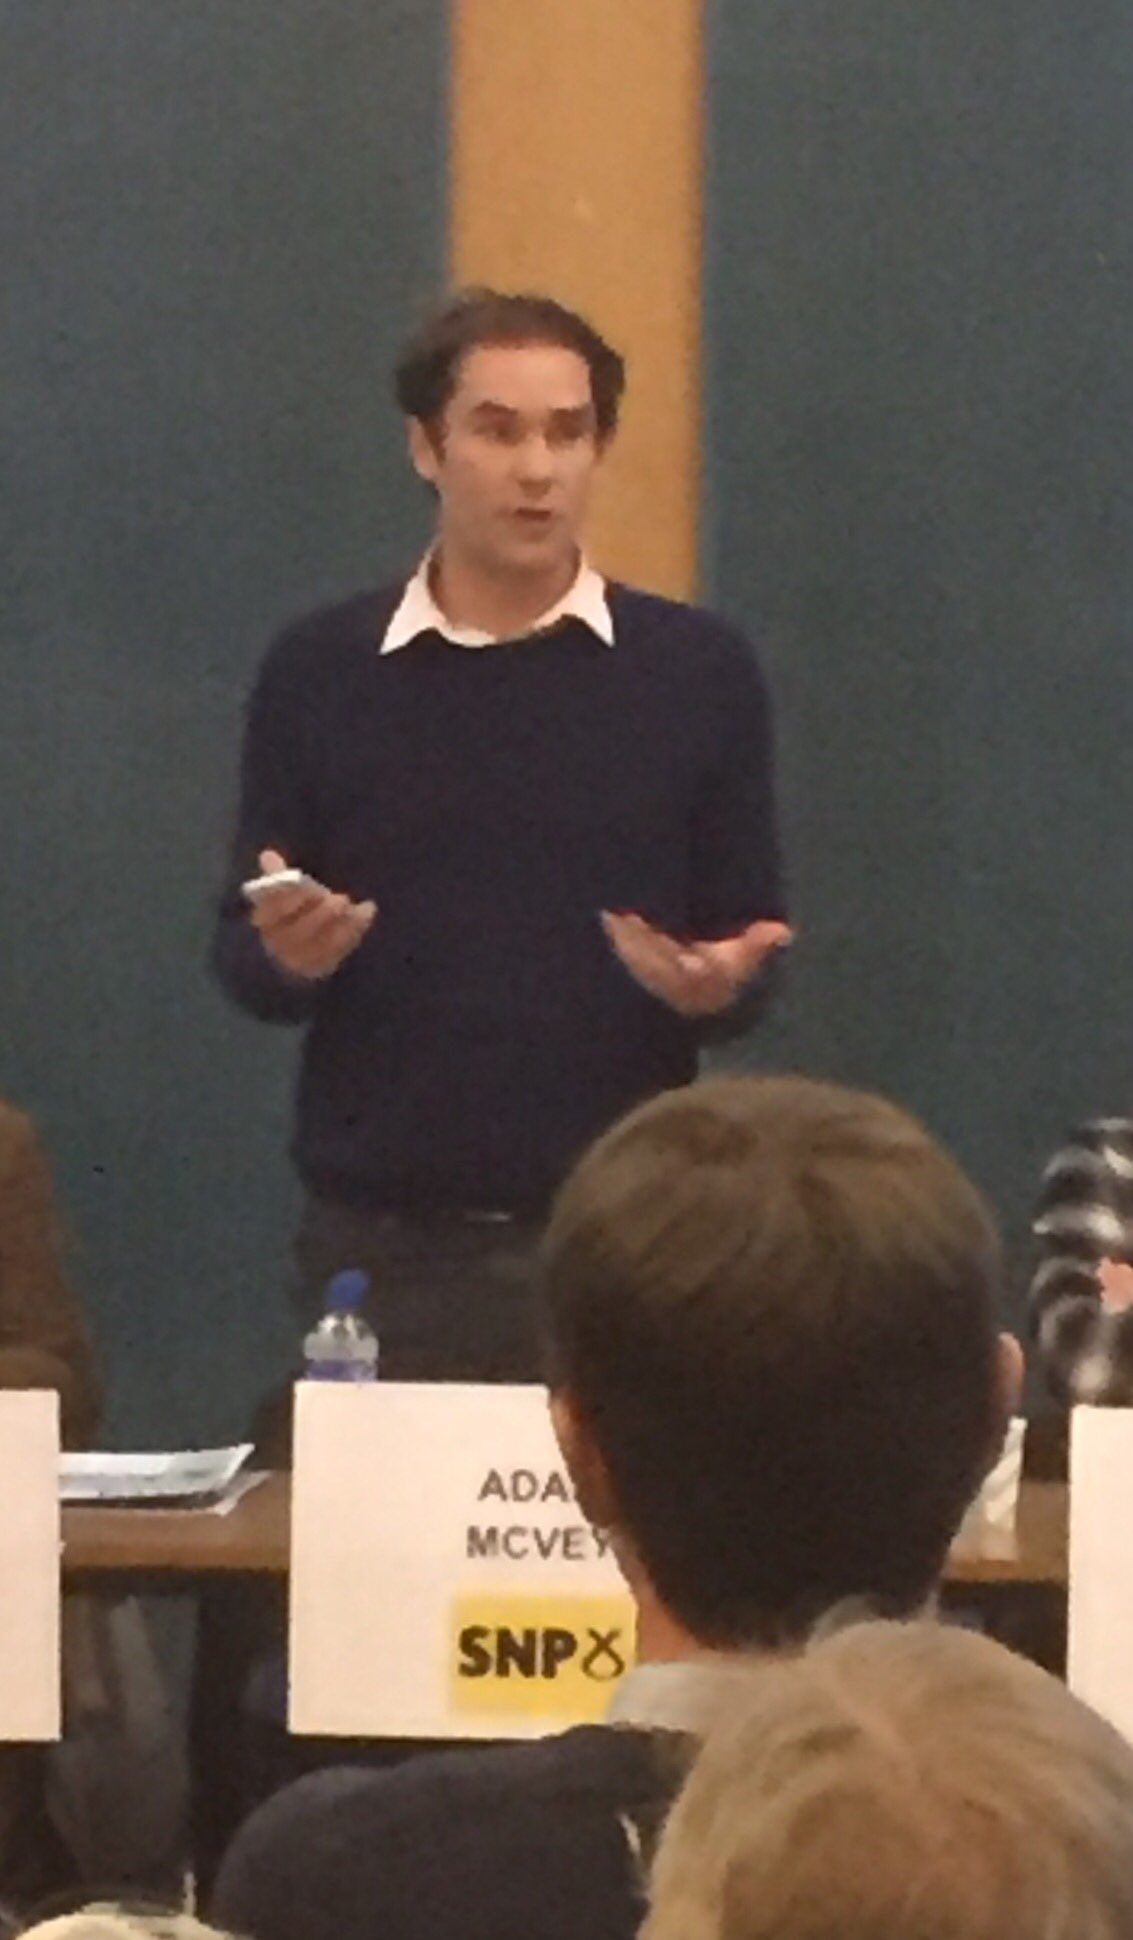 Second to introduce themself is @adamrmcvey #LeithHustings #Leith https://t.co/w7Qc20u7am